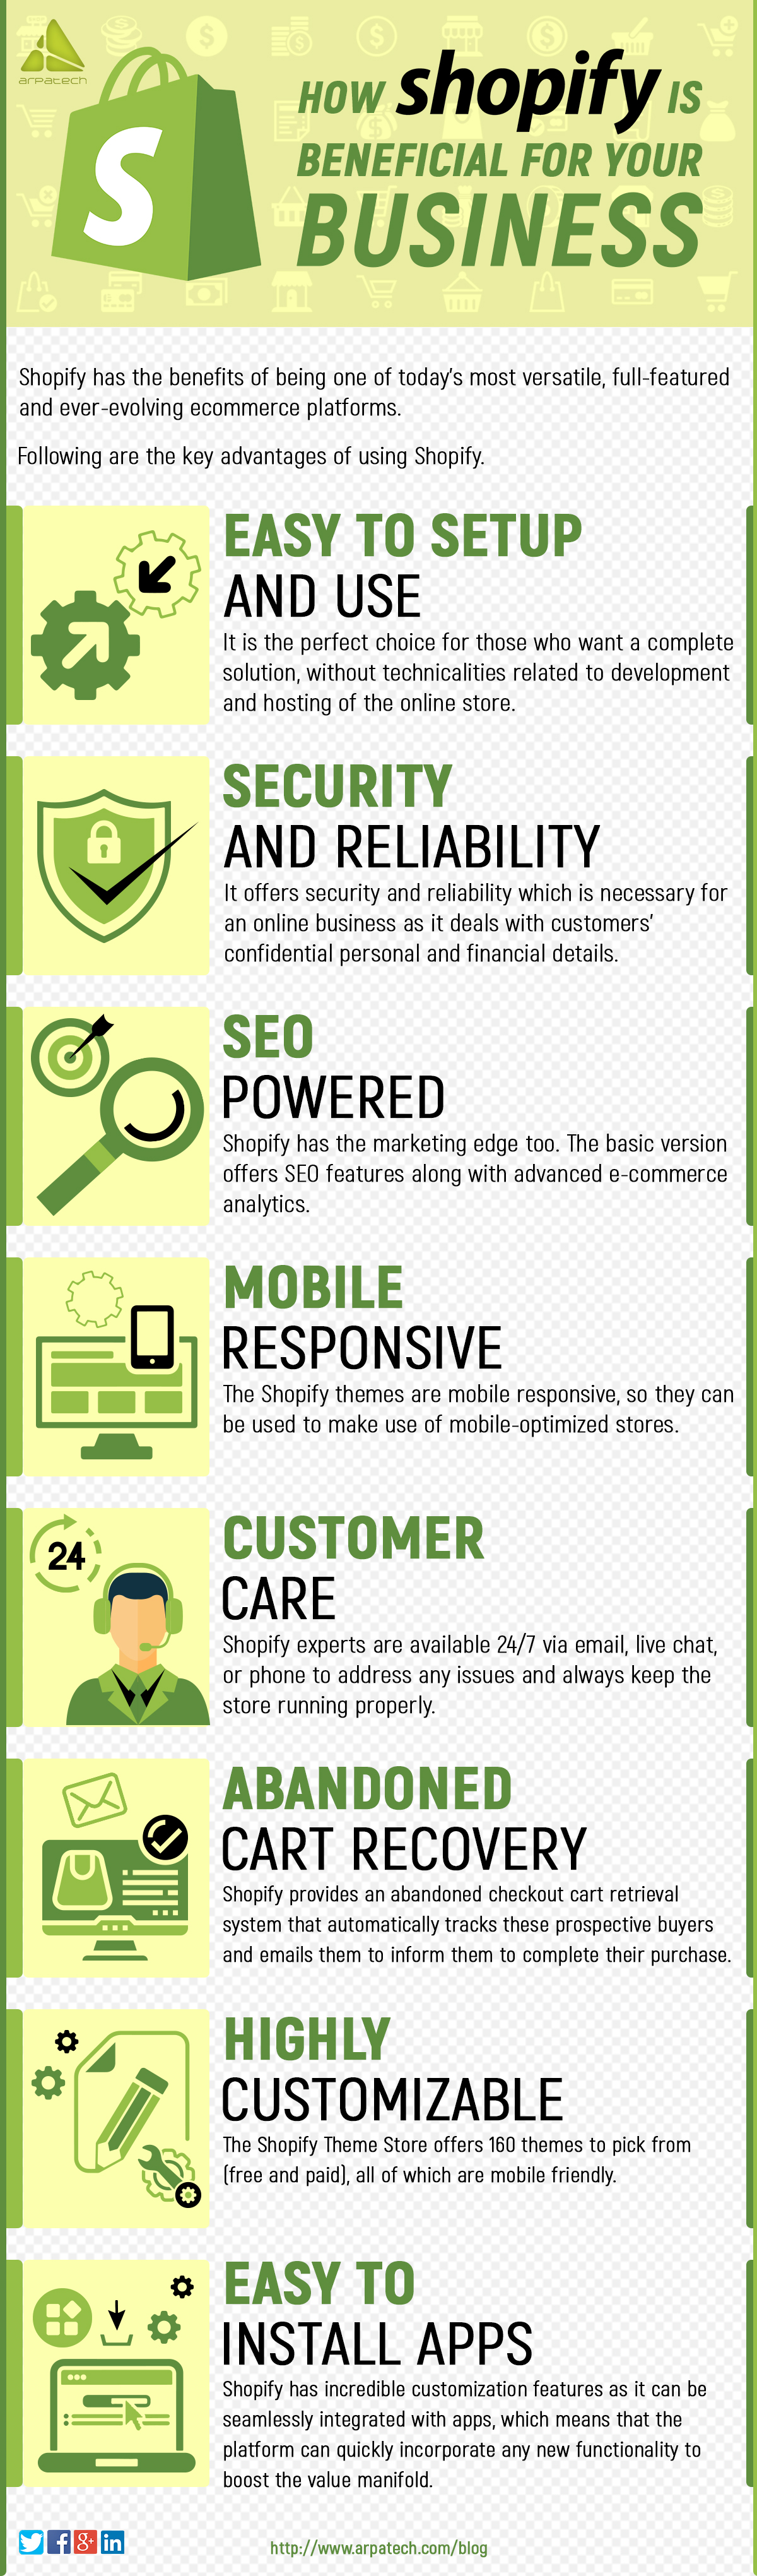 shopify-beficial-for-business-infographics